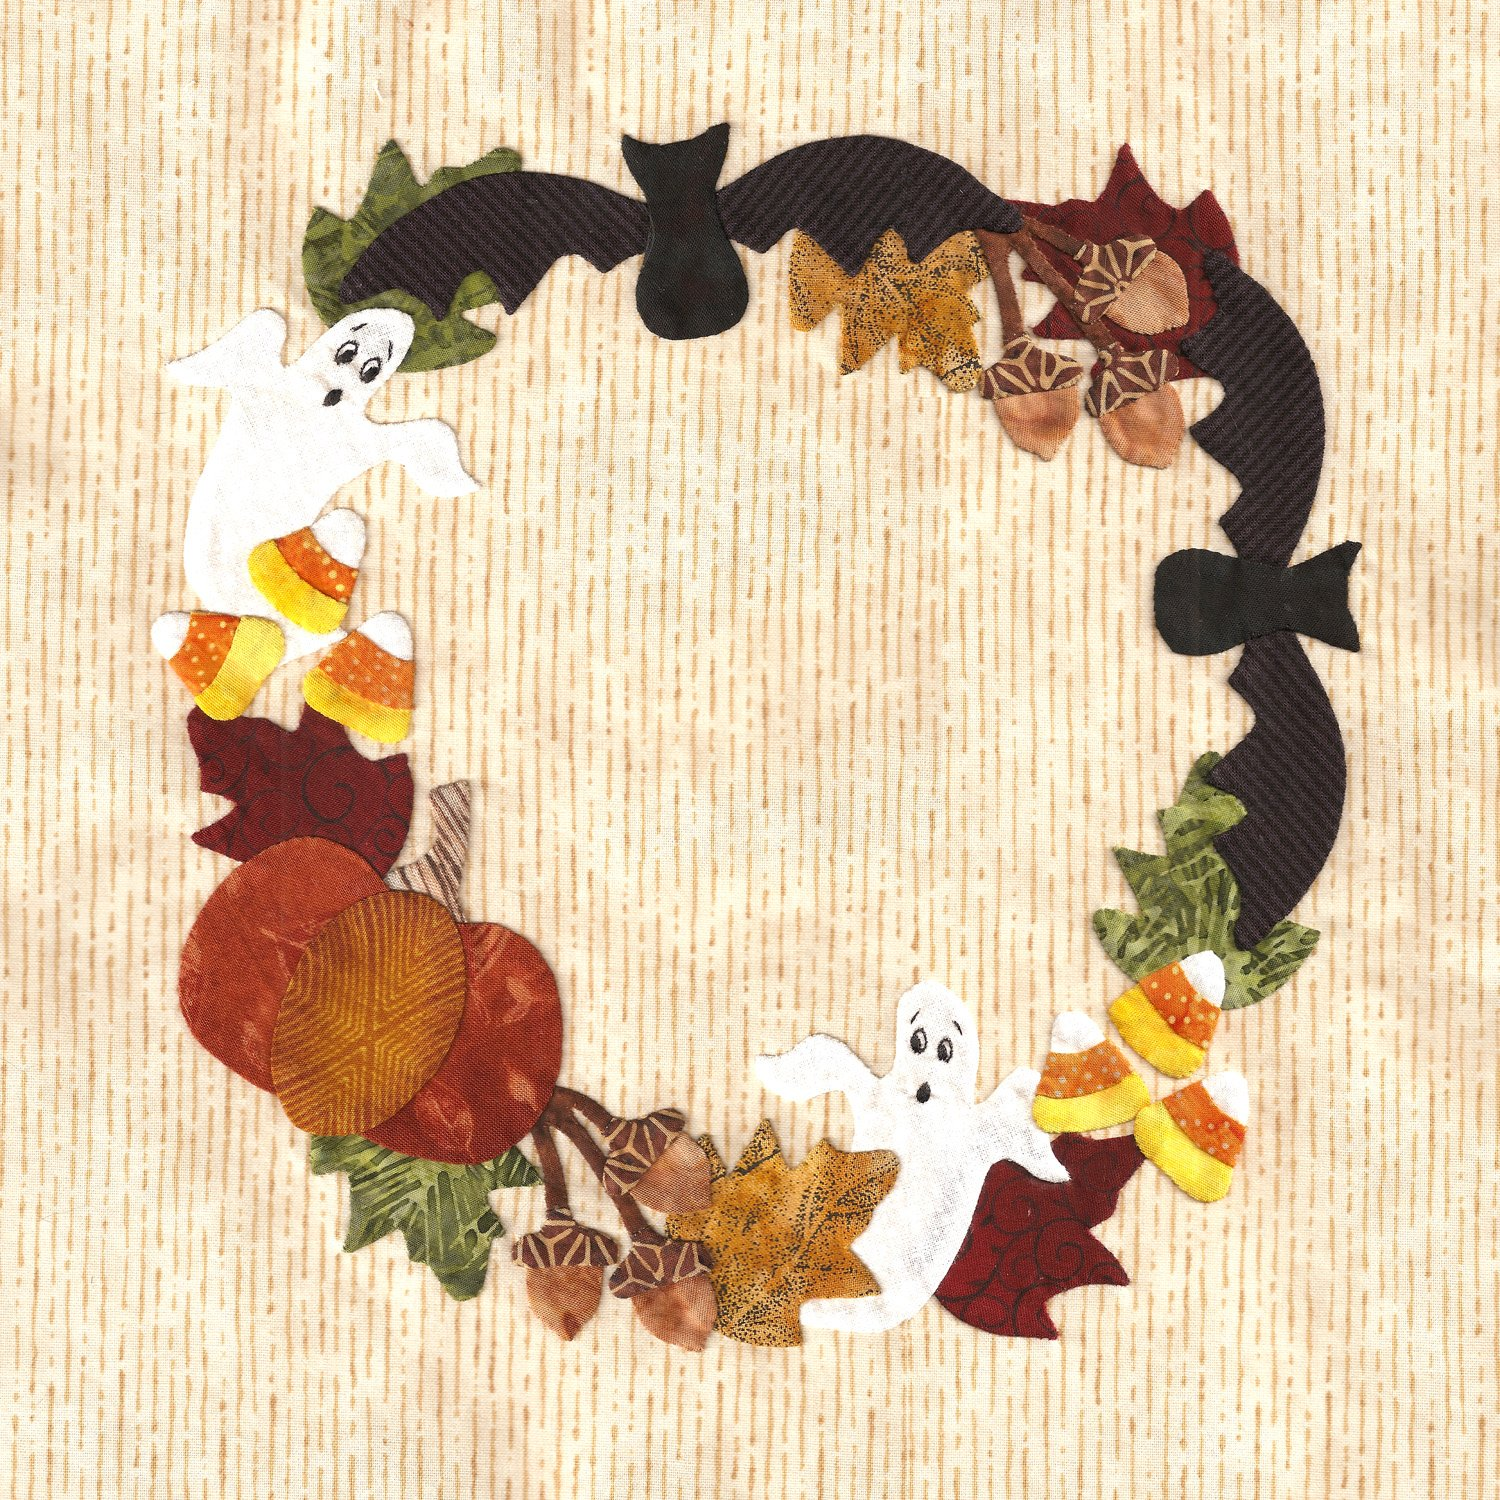 P3-1305 Ghosts & Bats Wreath